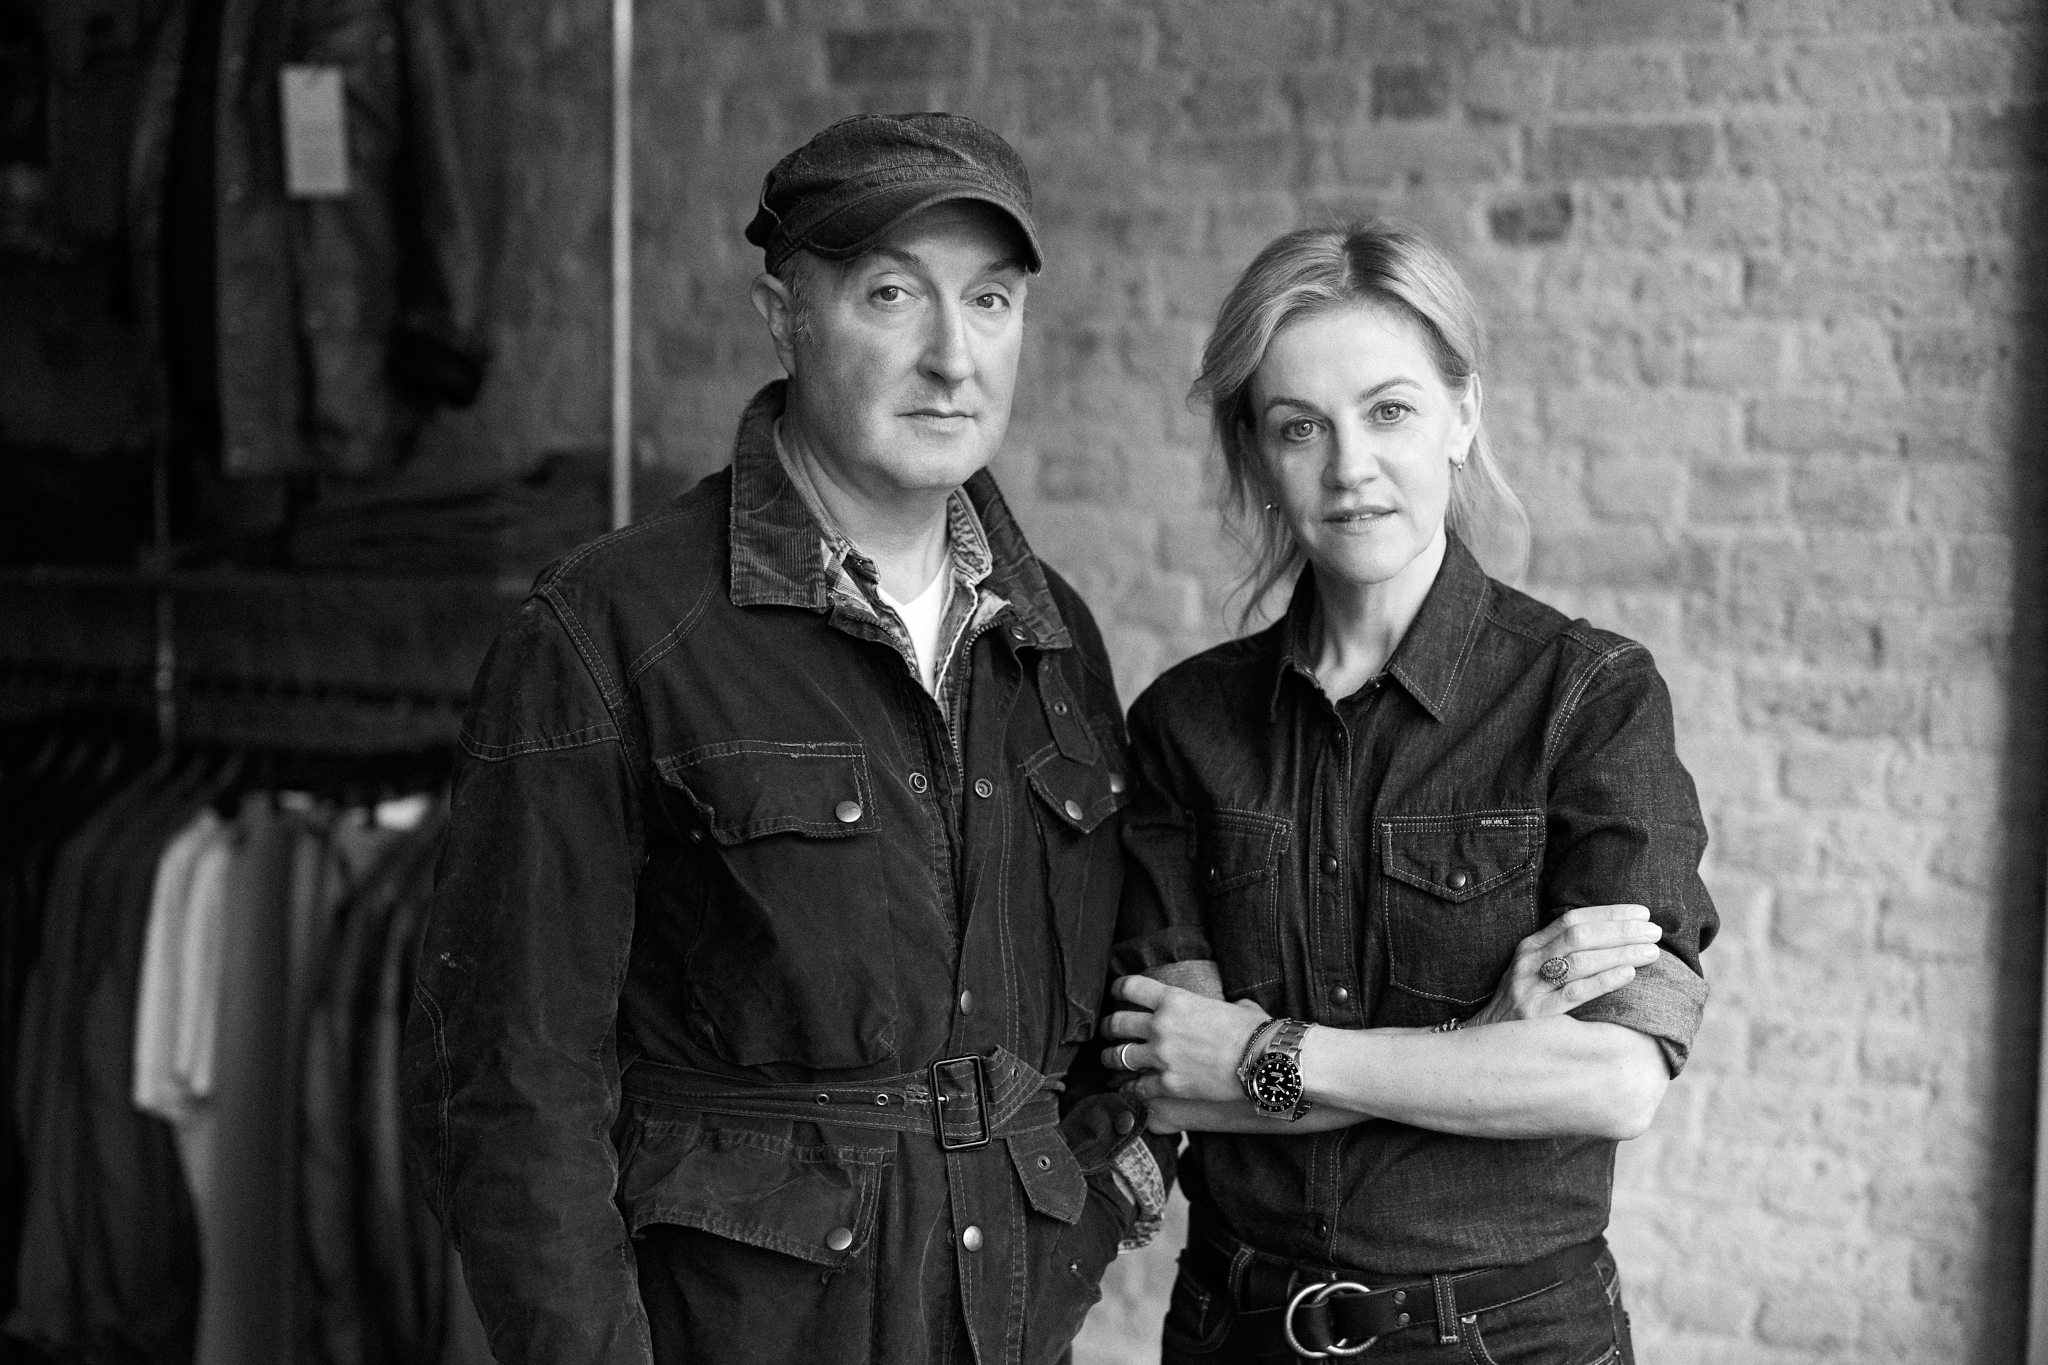 Belstaff chief executive officer Helen Wright and creative director Sean Lehnhardt-Moore.